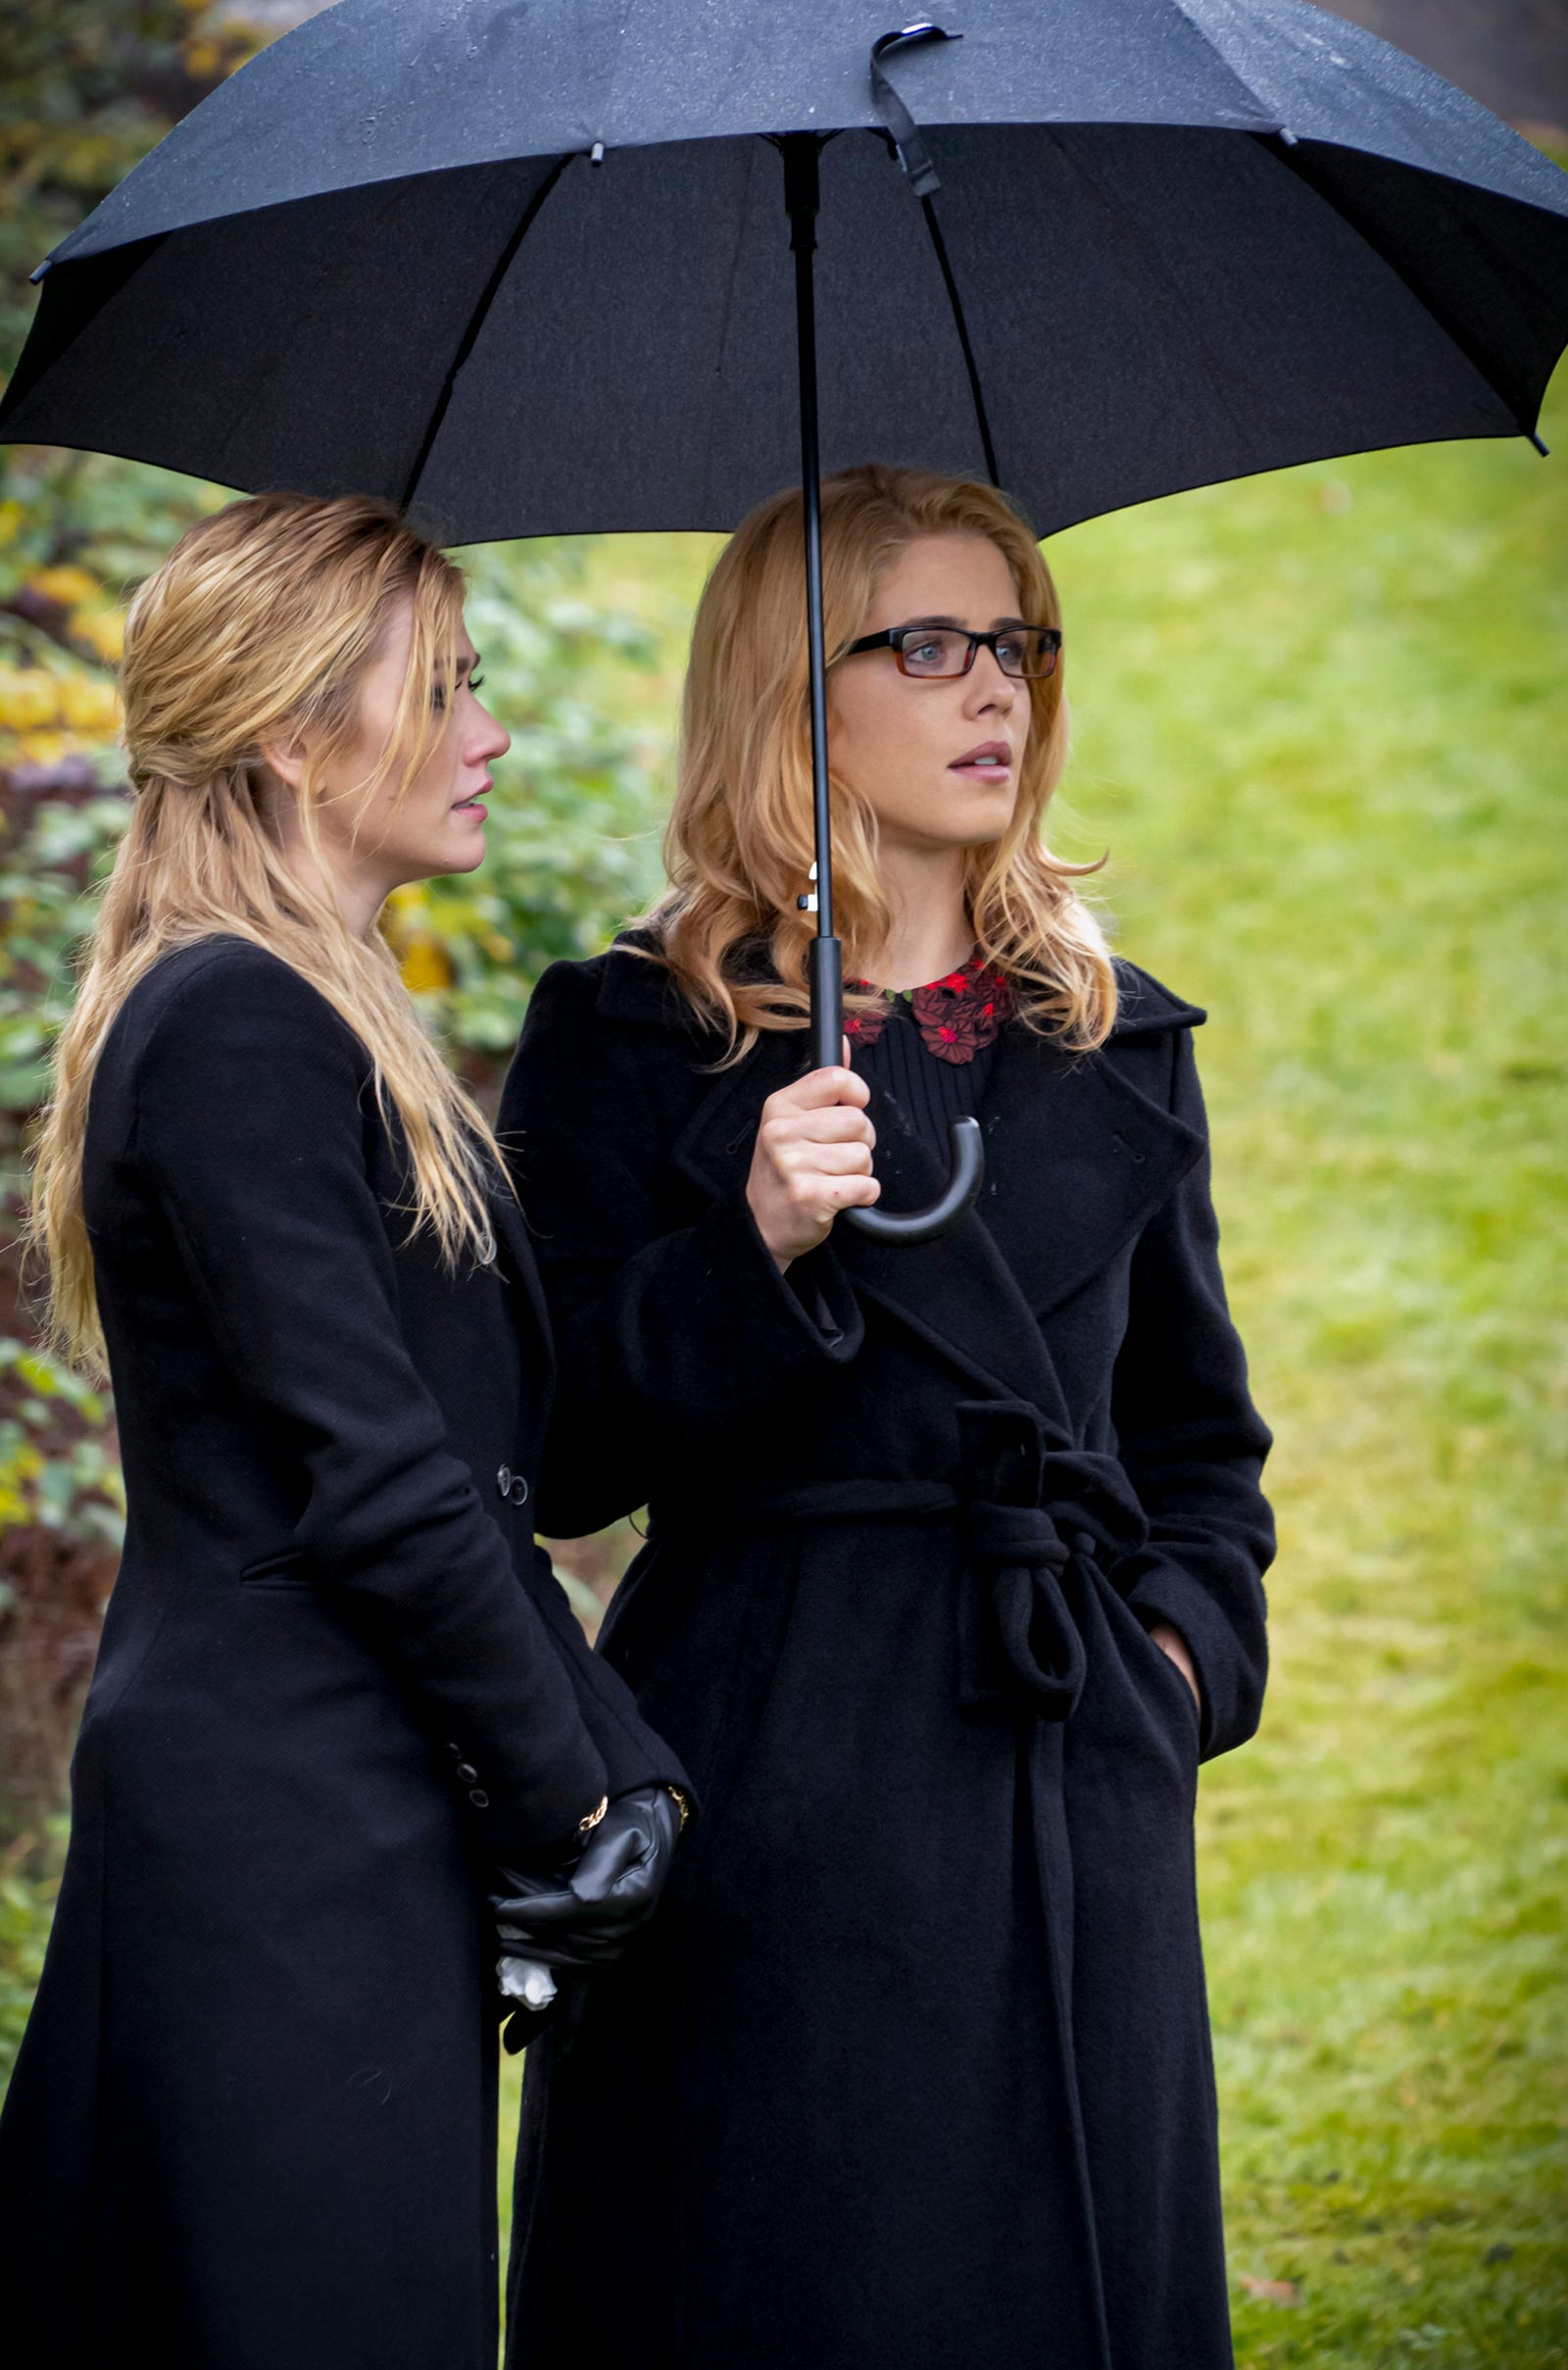 Arrow series finale photos reveal Felicity's return and major post-Crisis changes 14